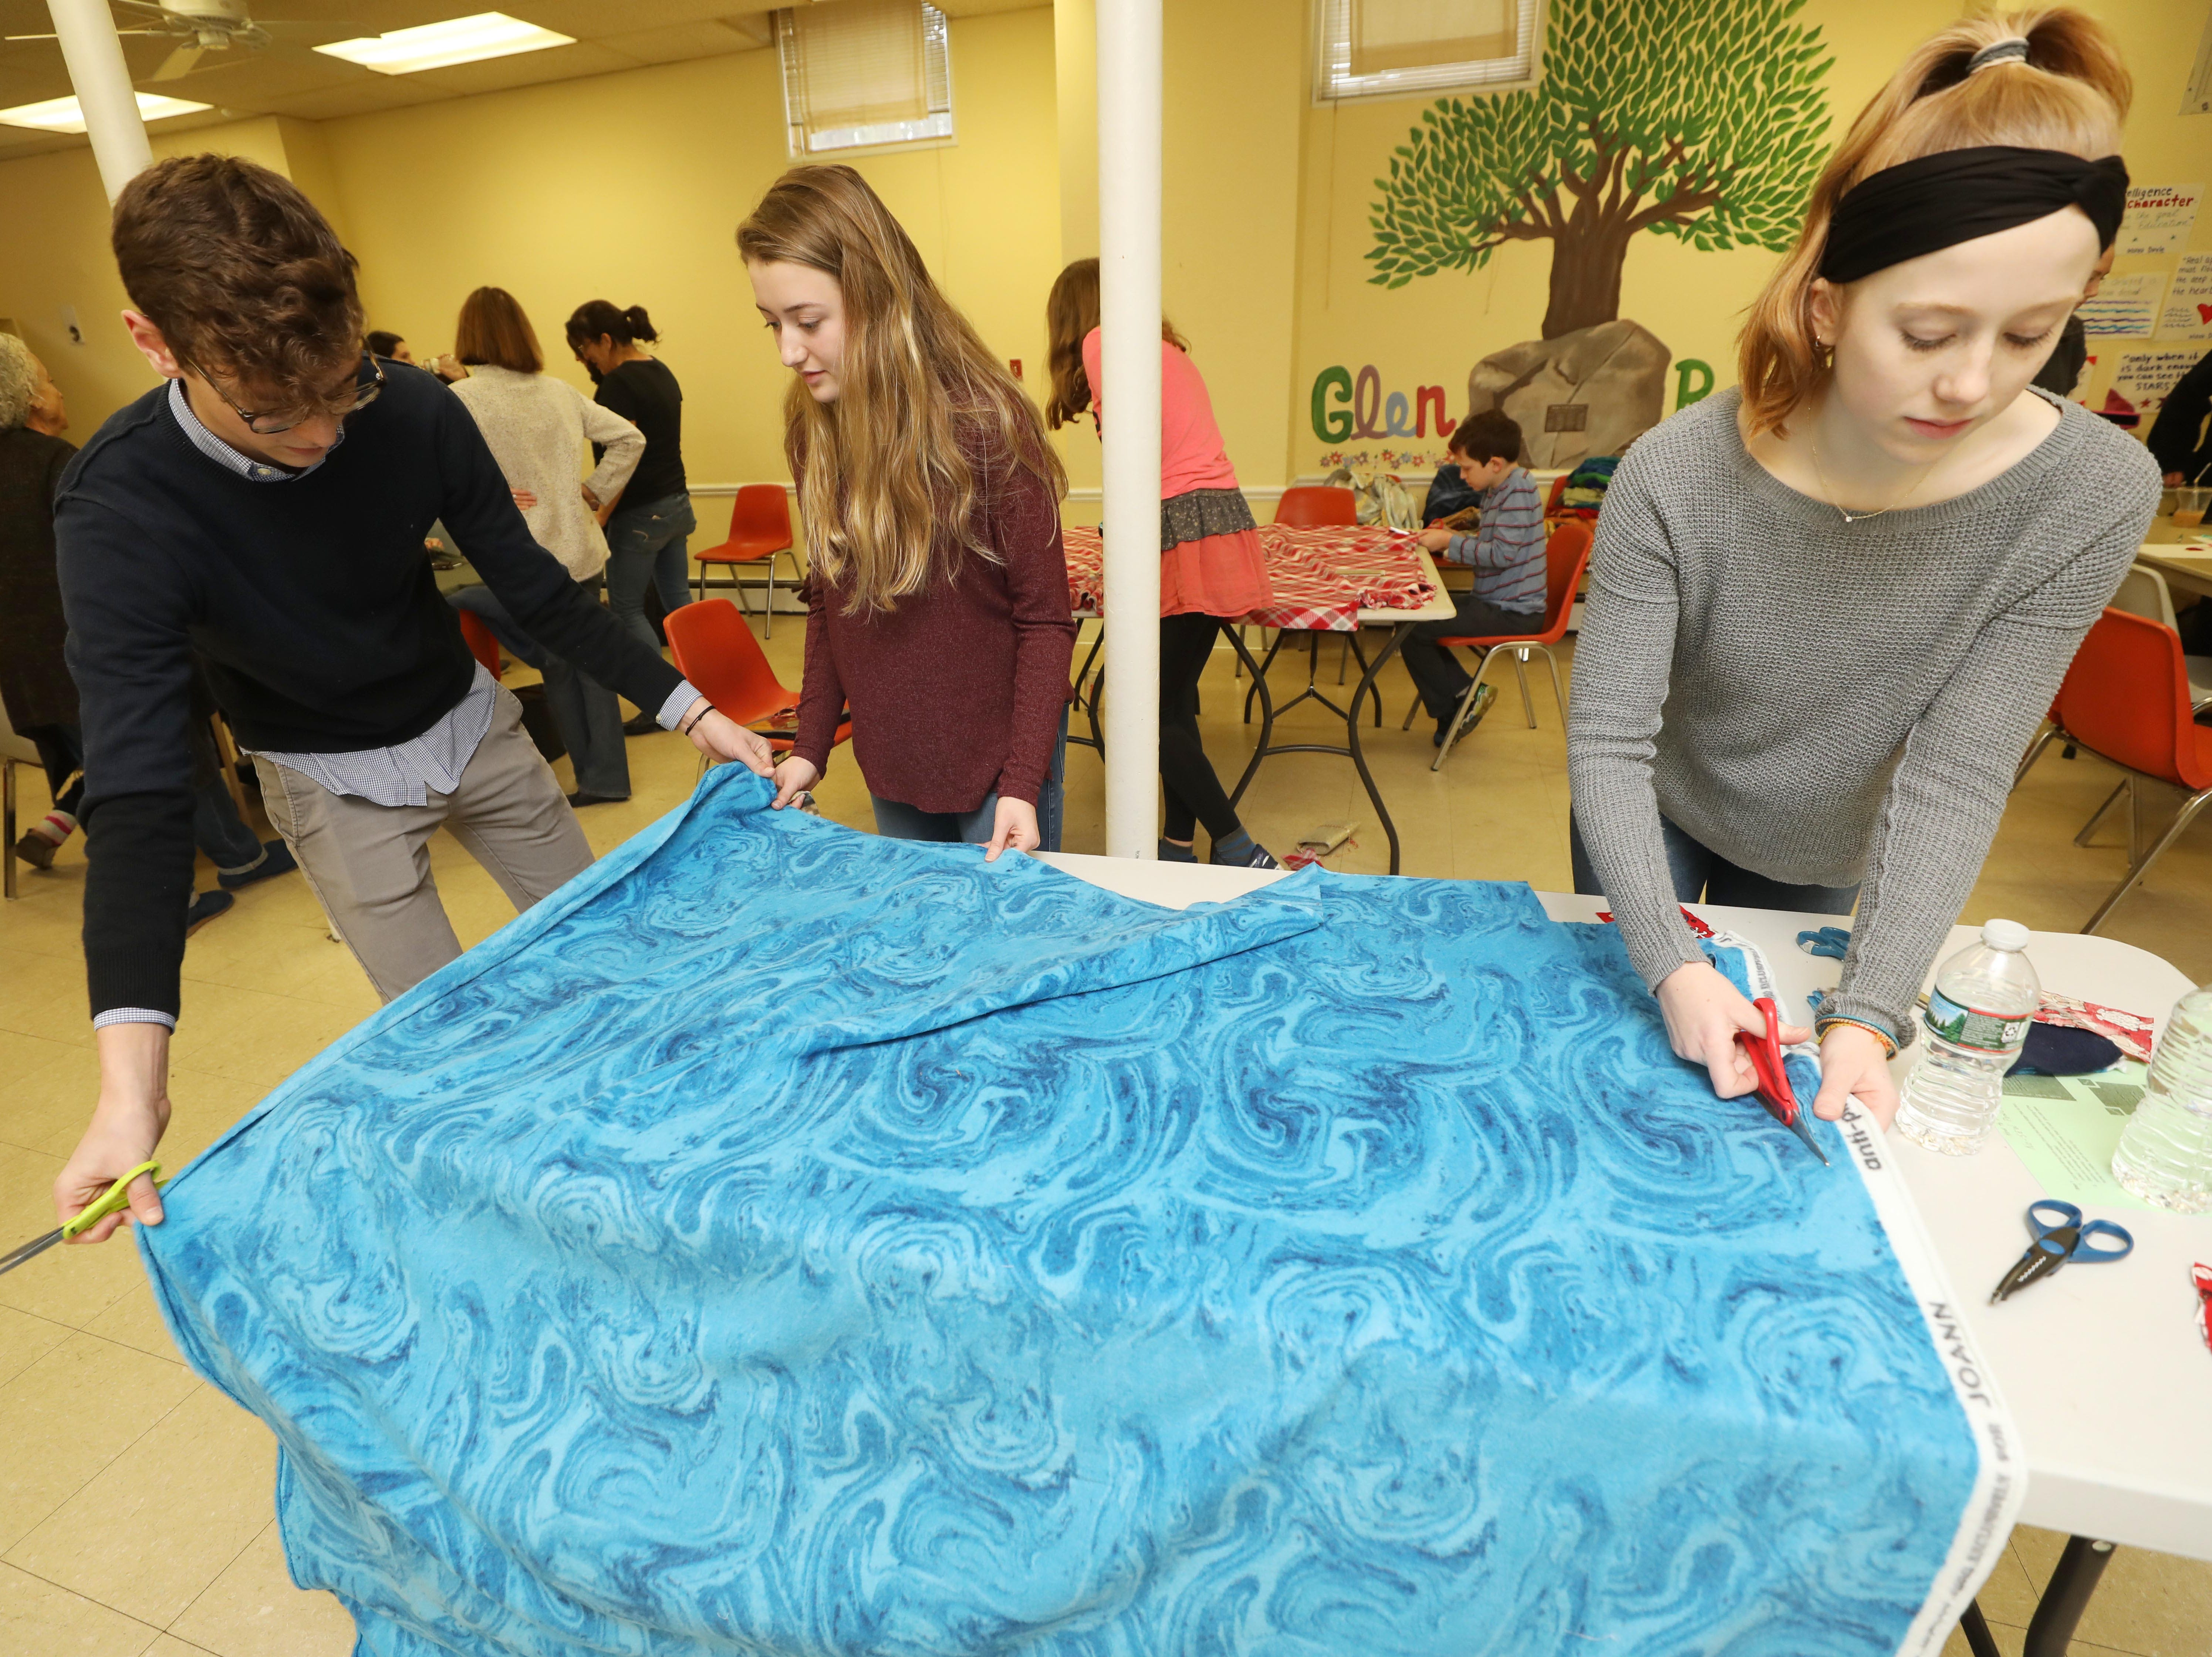 Matt Shiels, President of Blankets for Good, organizer of the event, Lauren Amram, a Glen Rock HS junior and Melinda Somers a junior at Glen Rock and Key Club board member work on making a blanket that will be given to those who are homeless inn New Jersey. It's part of a Day of Service at the Glen Rock Annex on January 19, 2019 in recognition of Martin Luther King Day.